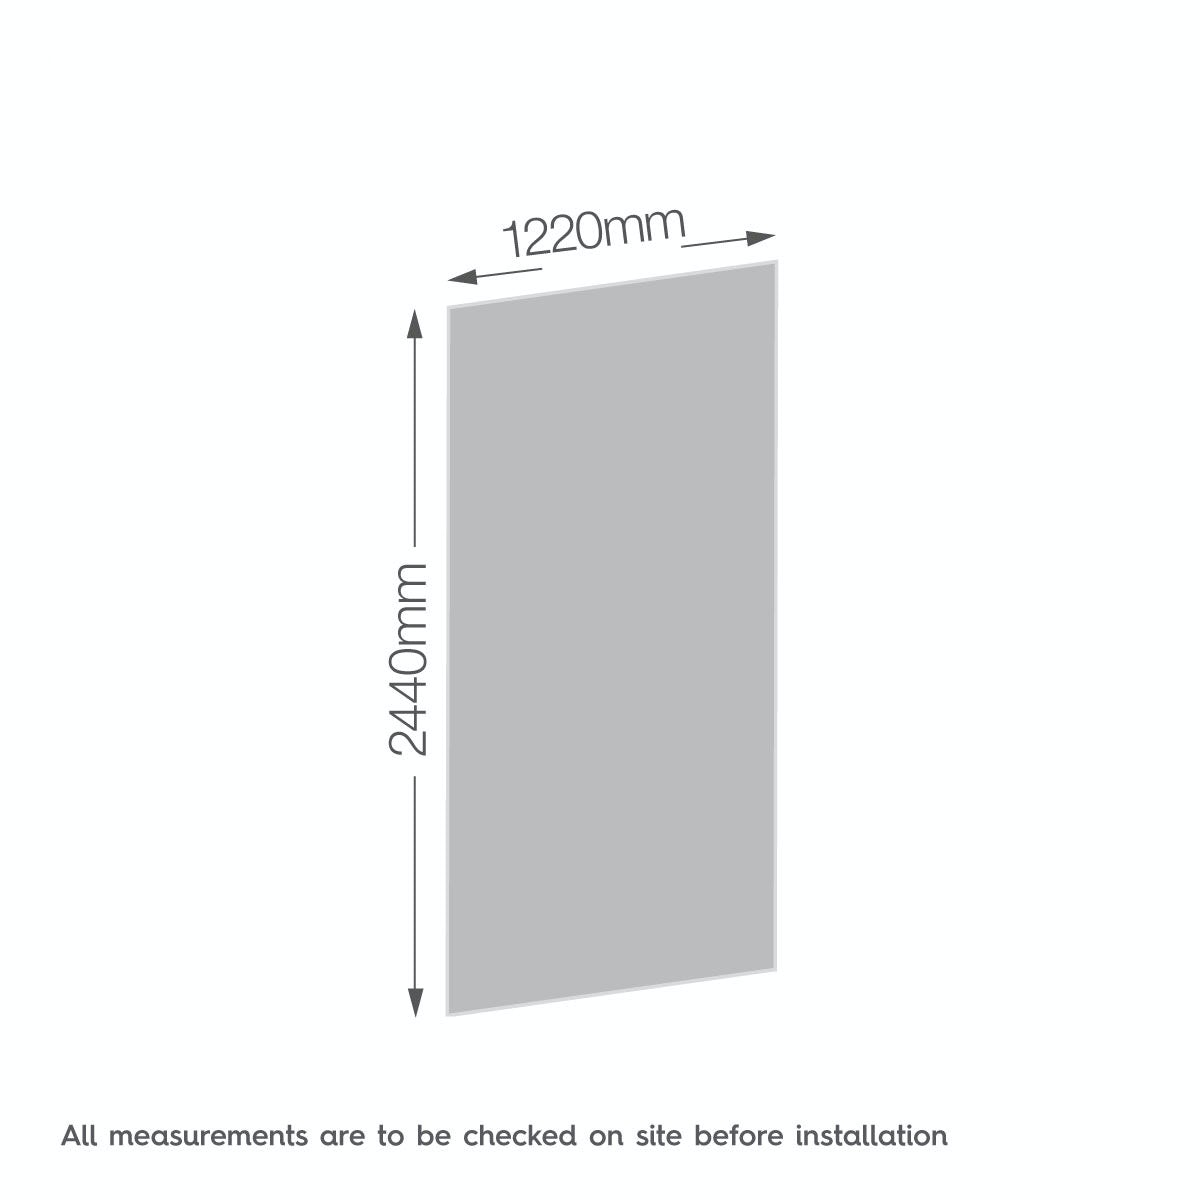 Dimensions for Zenolite plus ice acrylic shower wall panel 2440 x 1220